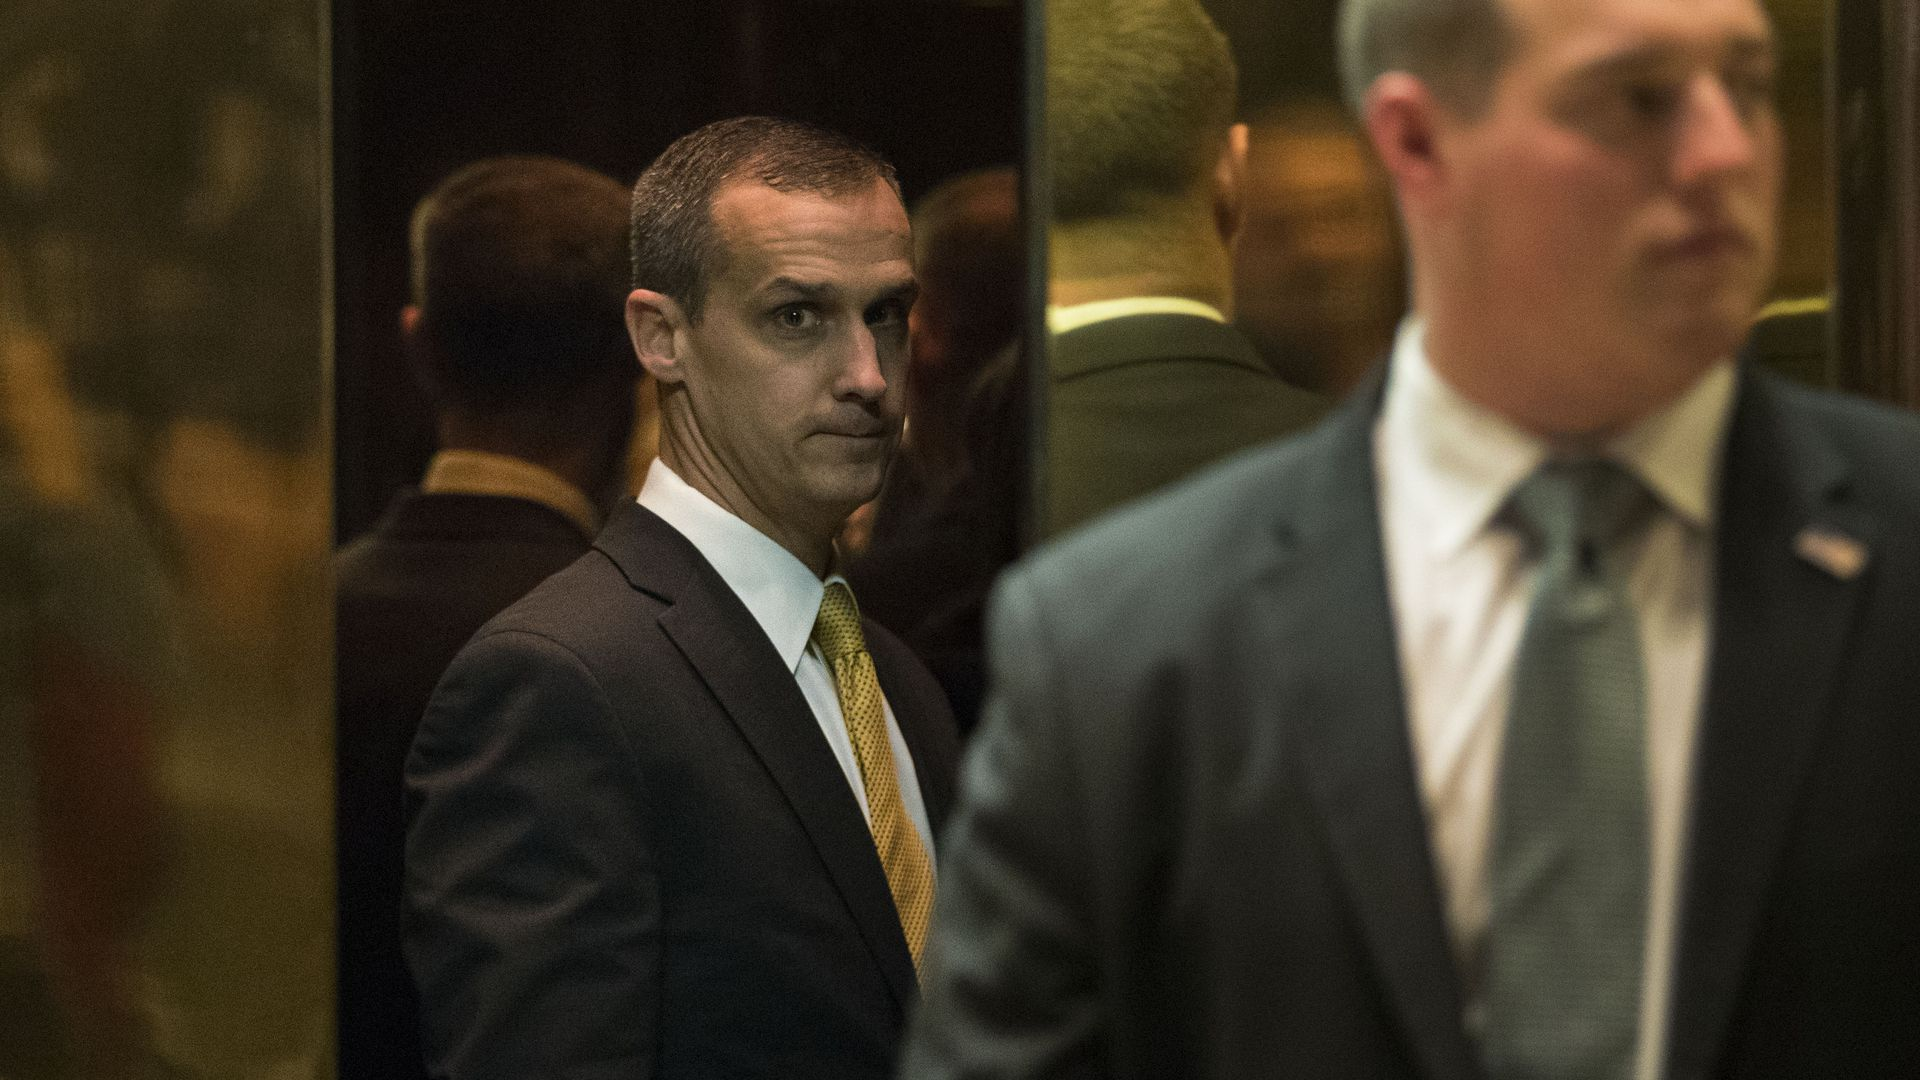 Corey Lewandowski seen between gold elevator doors looks disconcerted.